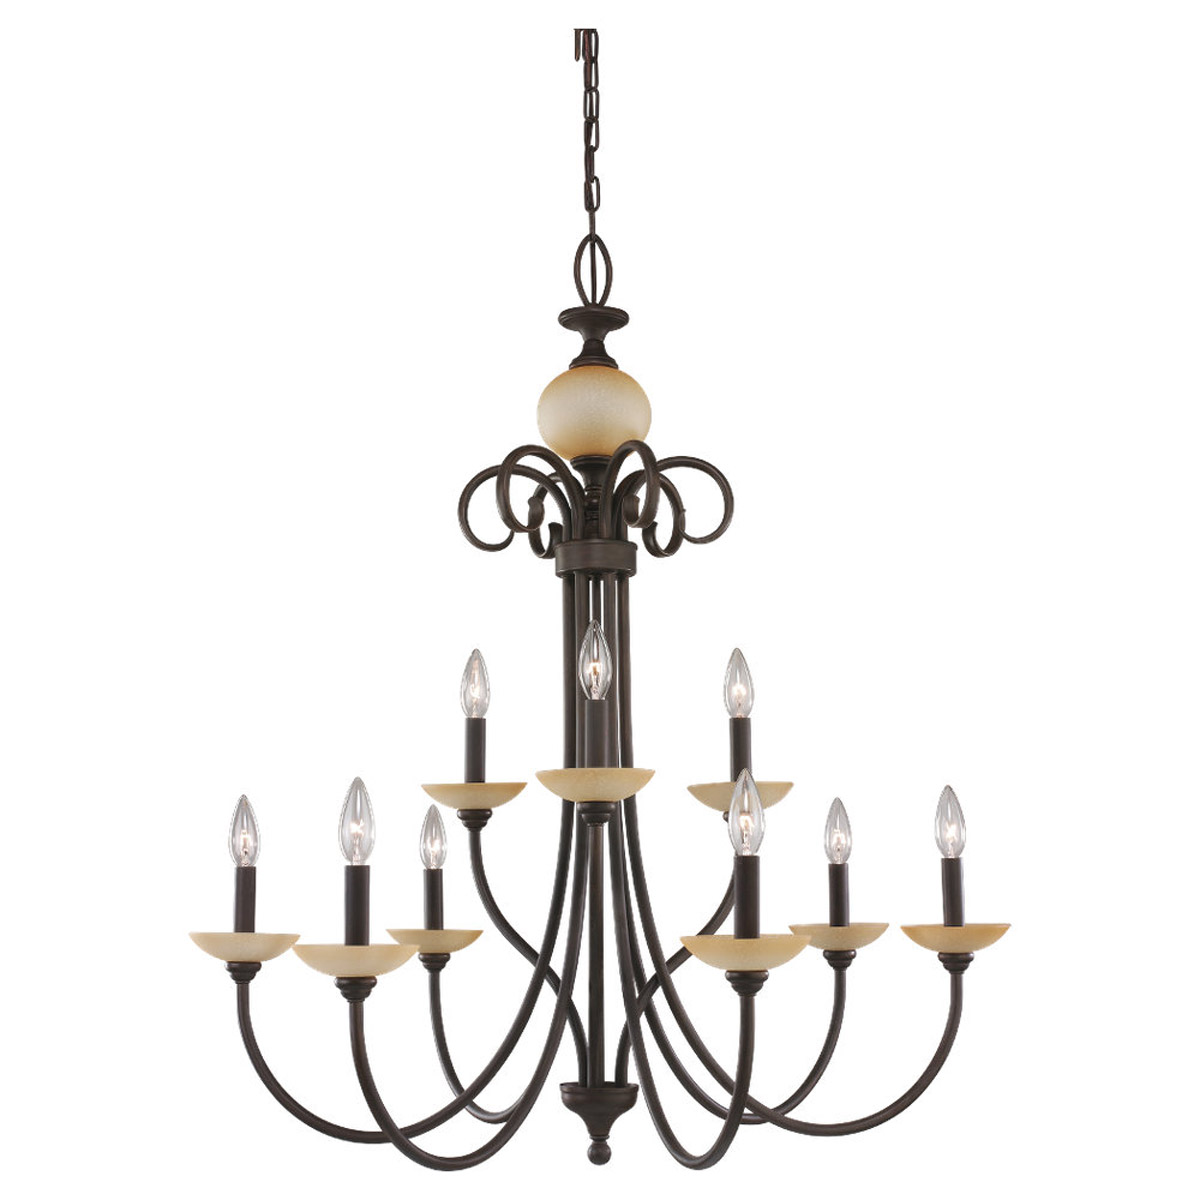 Sea Gull Lighting Montclaire 9 Light Chandelier in Olde Iron 31108-72